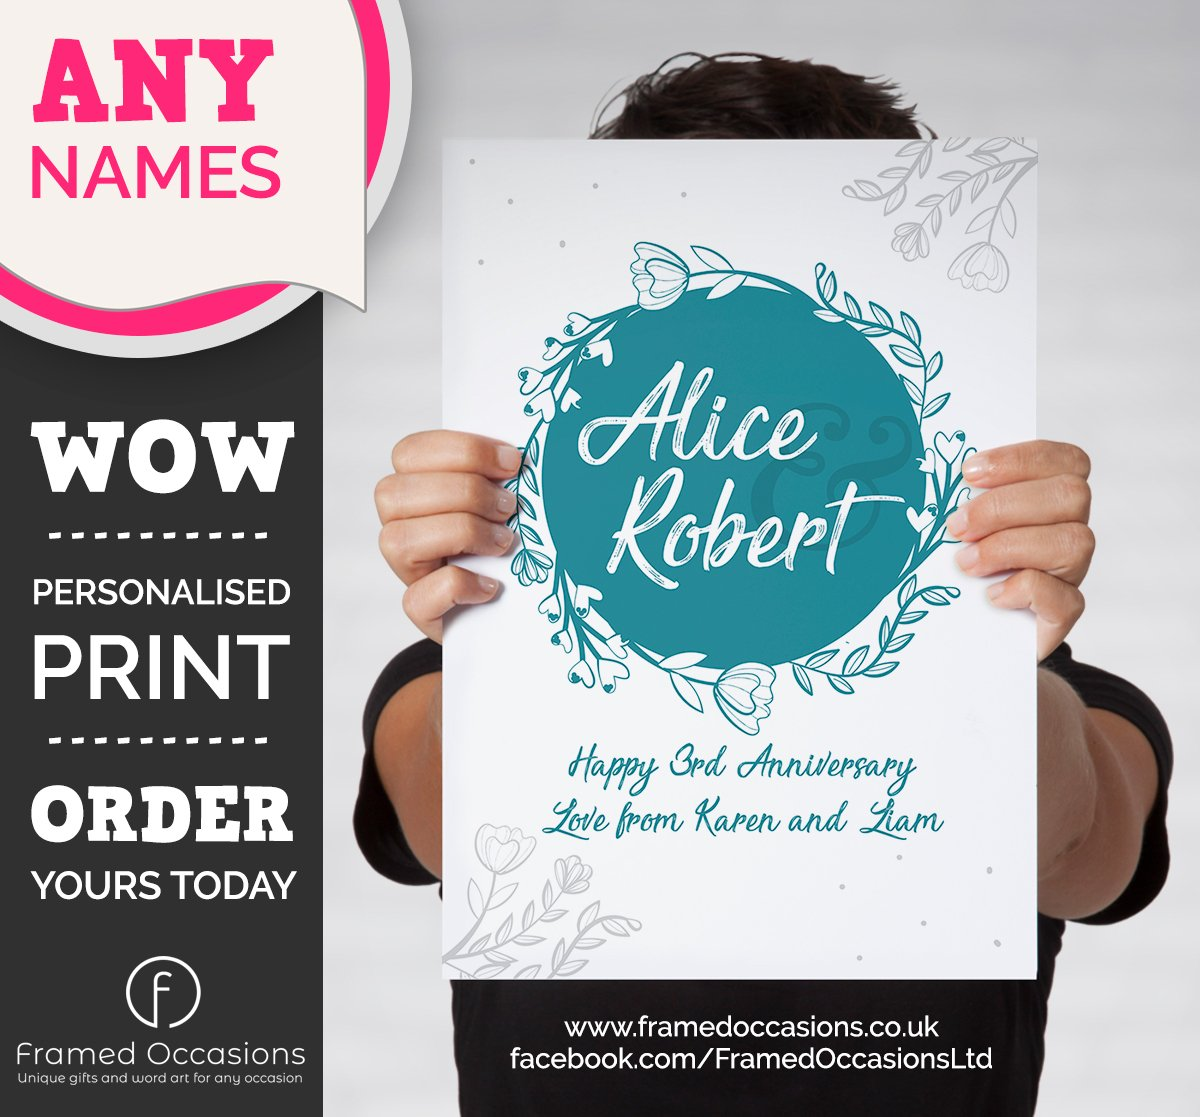 Personalised 3rd Wedding Anniversary Print (Named). Third anniversary wall art to celebrate 3 years as Mr and Mrs. MESSAGE WITH ORDERS  #3rdanniversary#personalisedprint#weddinganniversary#anniversary